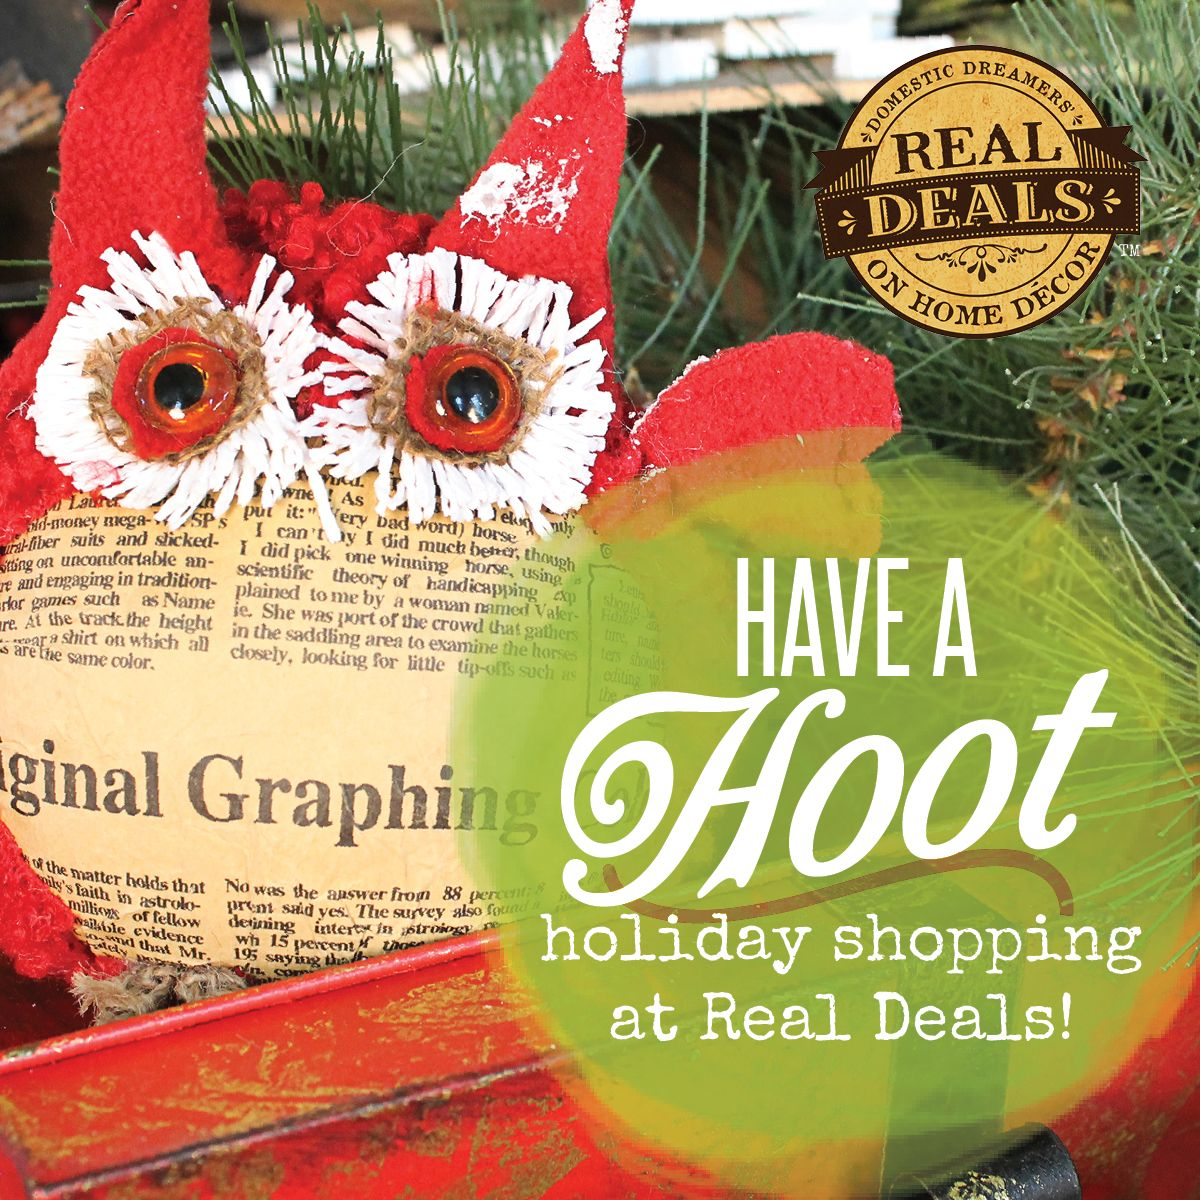 Shop With Real Deals This Holiday Season!